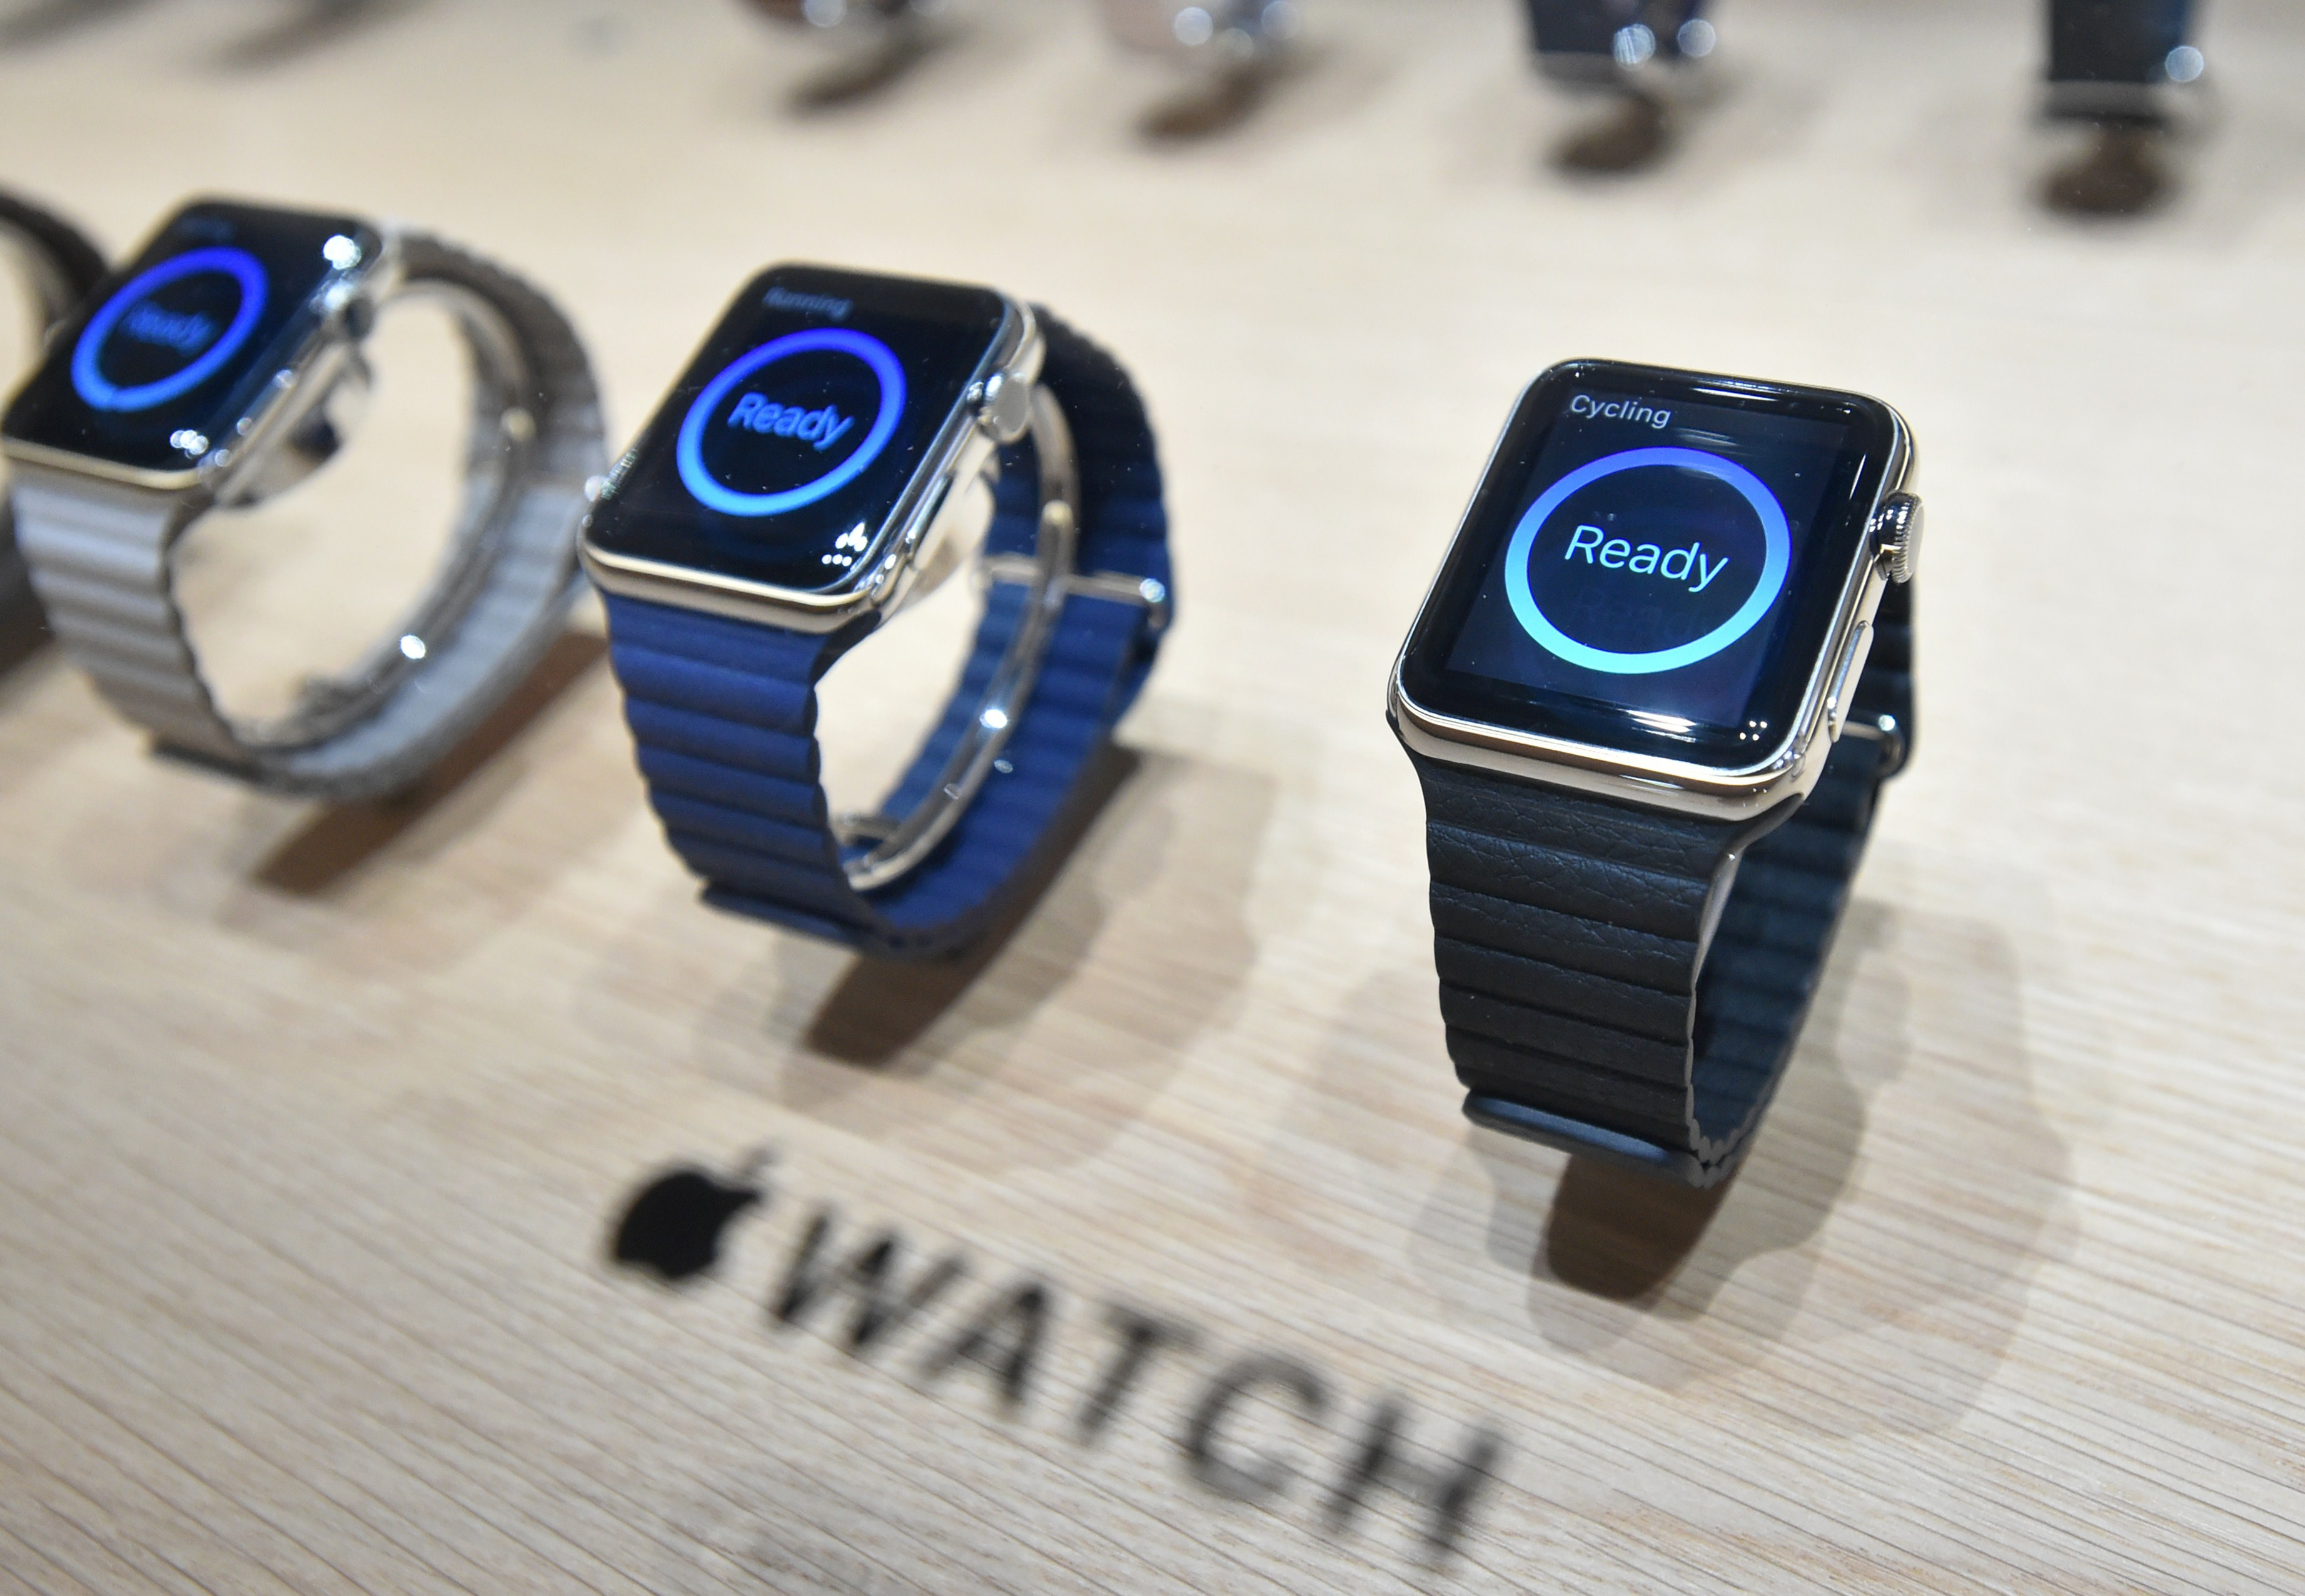 Apple Watches are seen on display during an Apple media event at the Yerba Buena Center for the Arts in San Francisco, California on March 09, 2015.